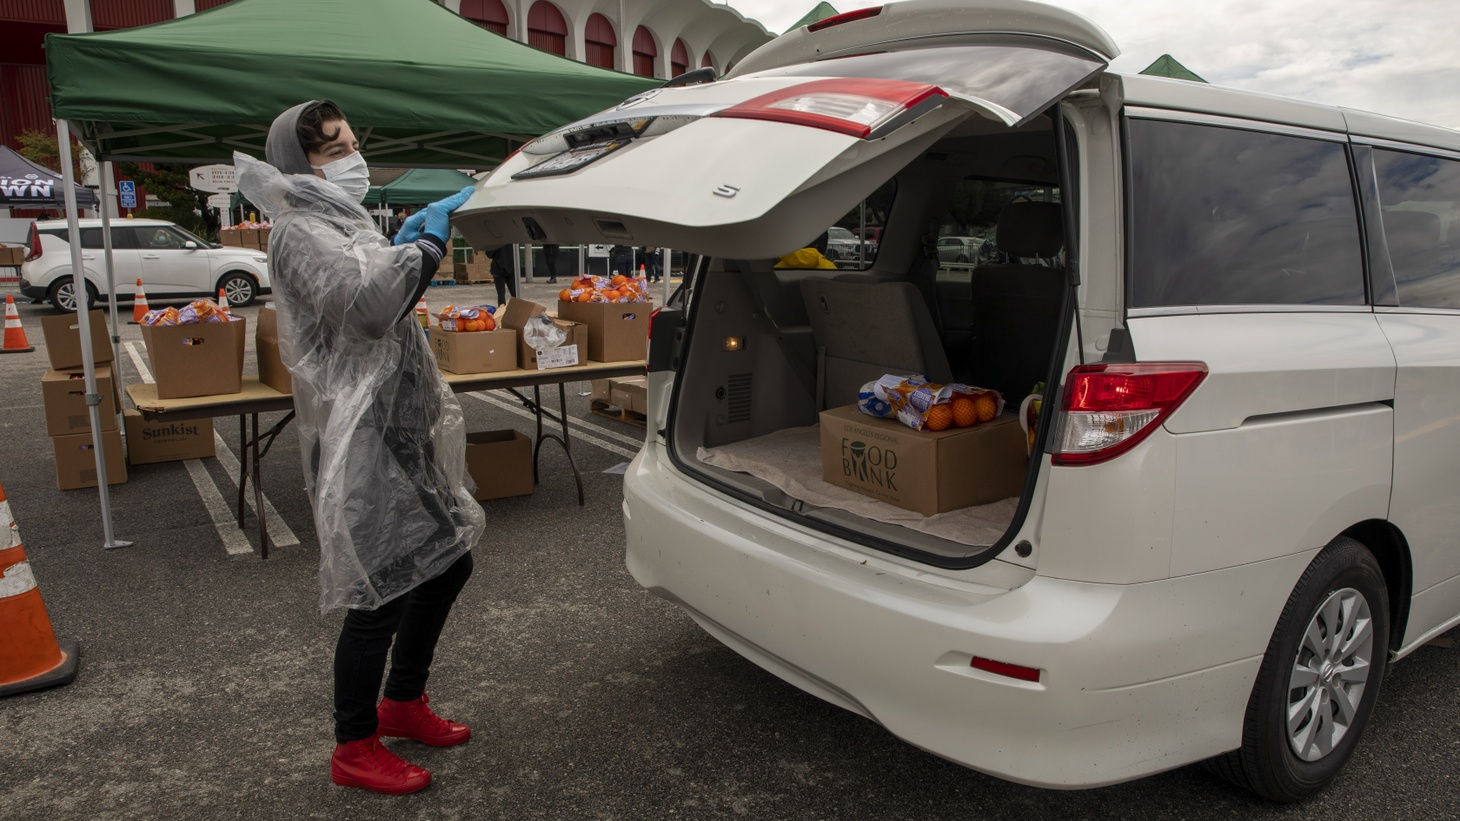 Last week, the LA Regional Food Bank was at the Forum, where thousands of families came for assistance.